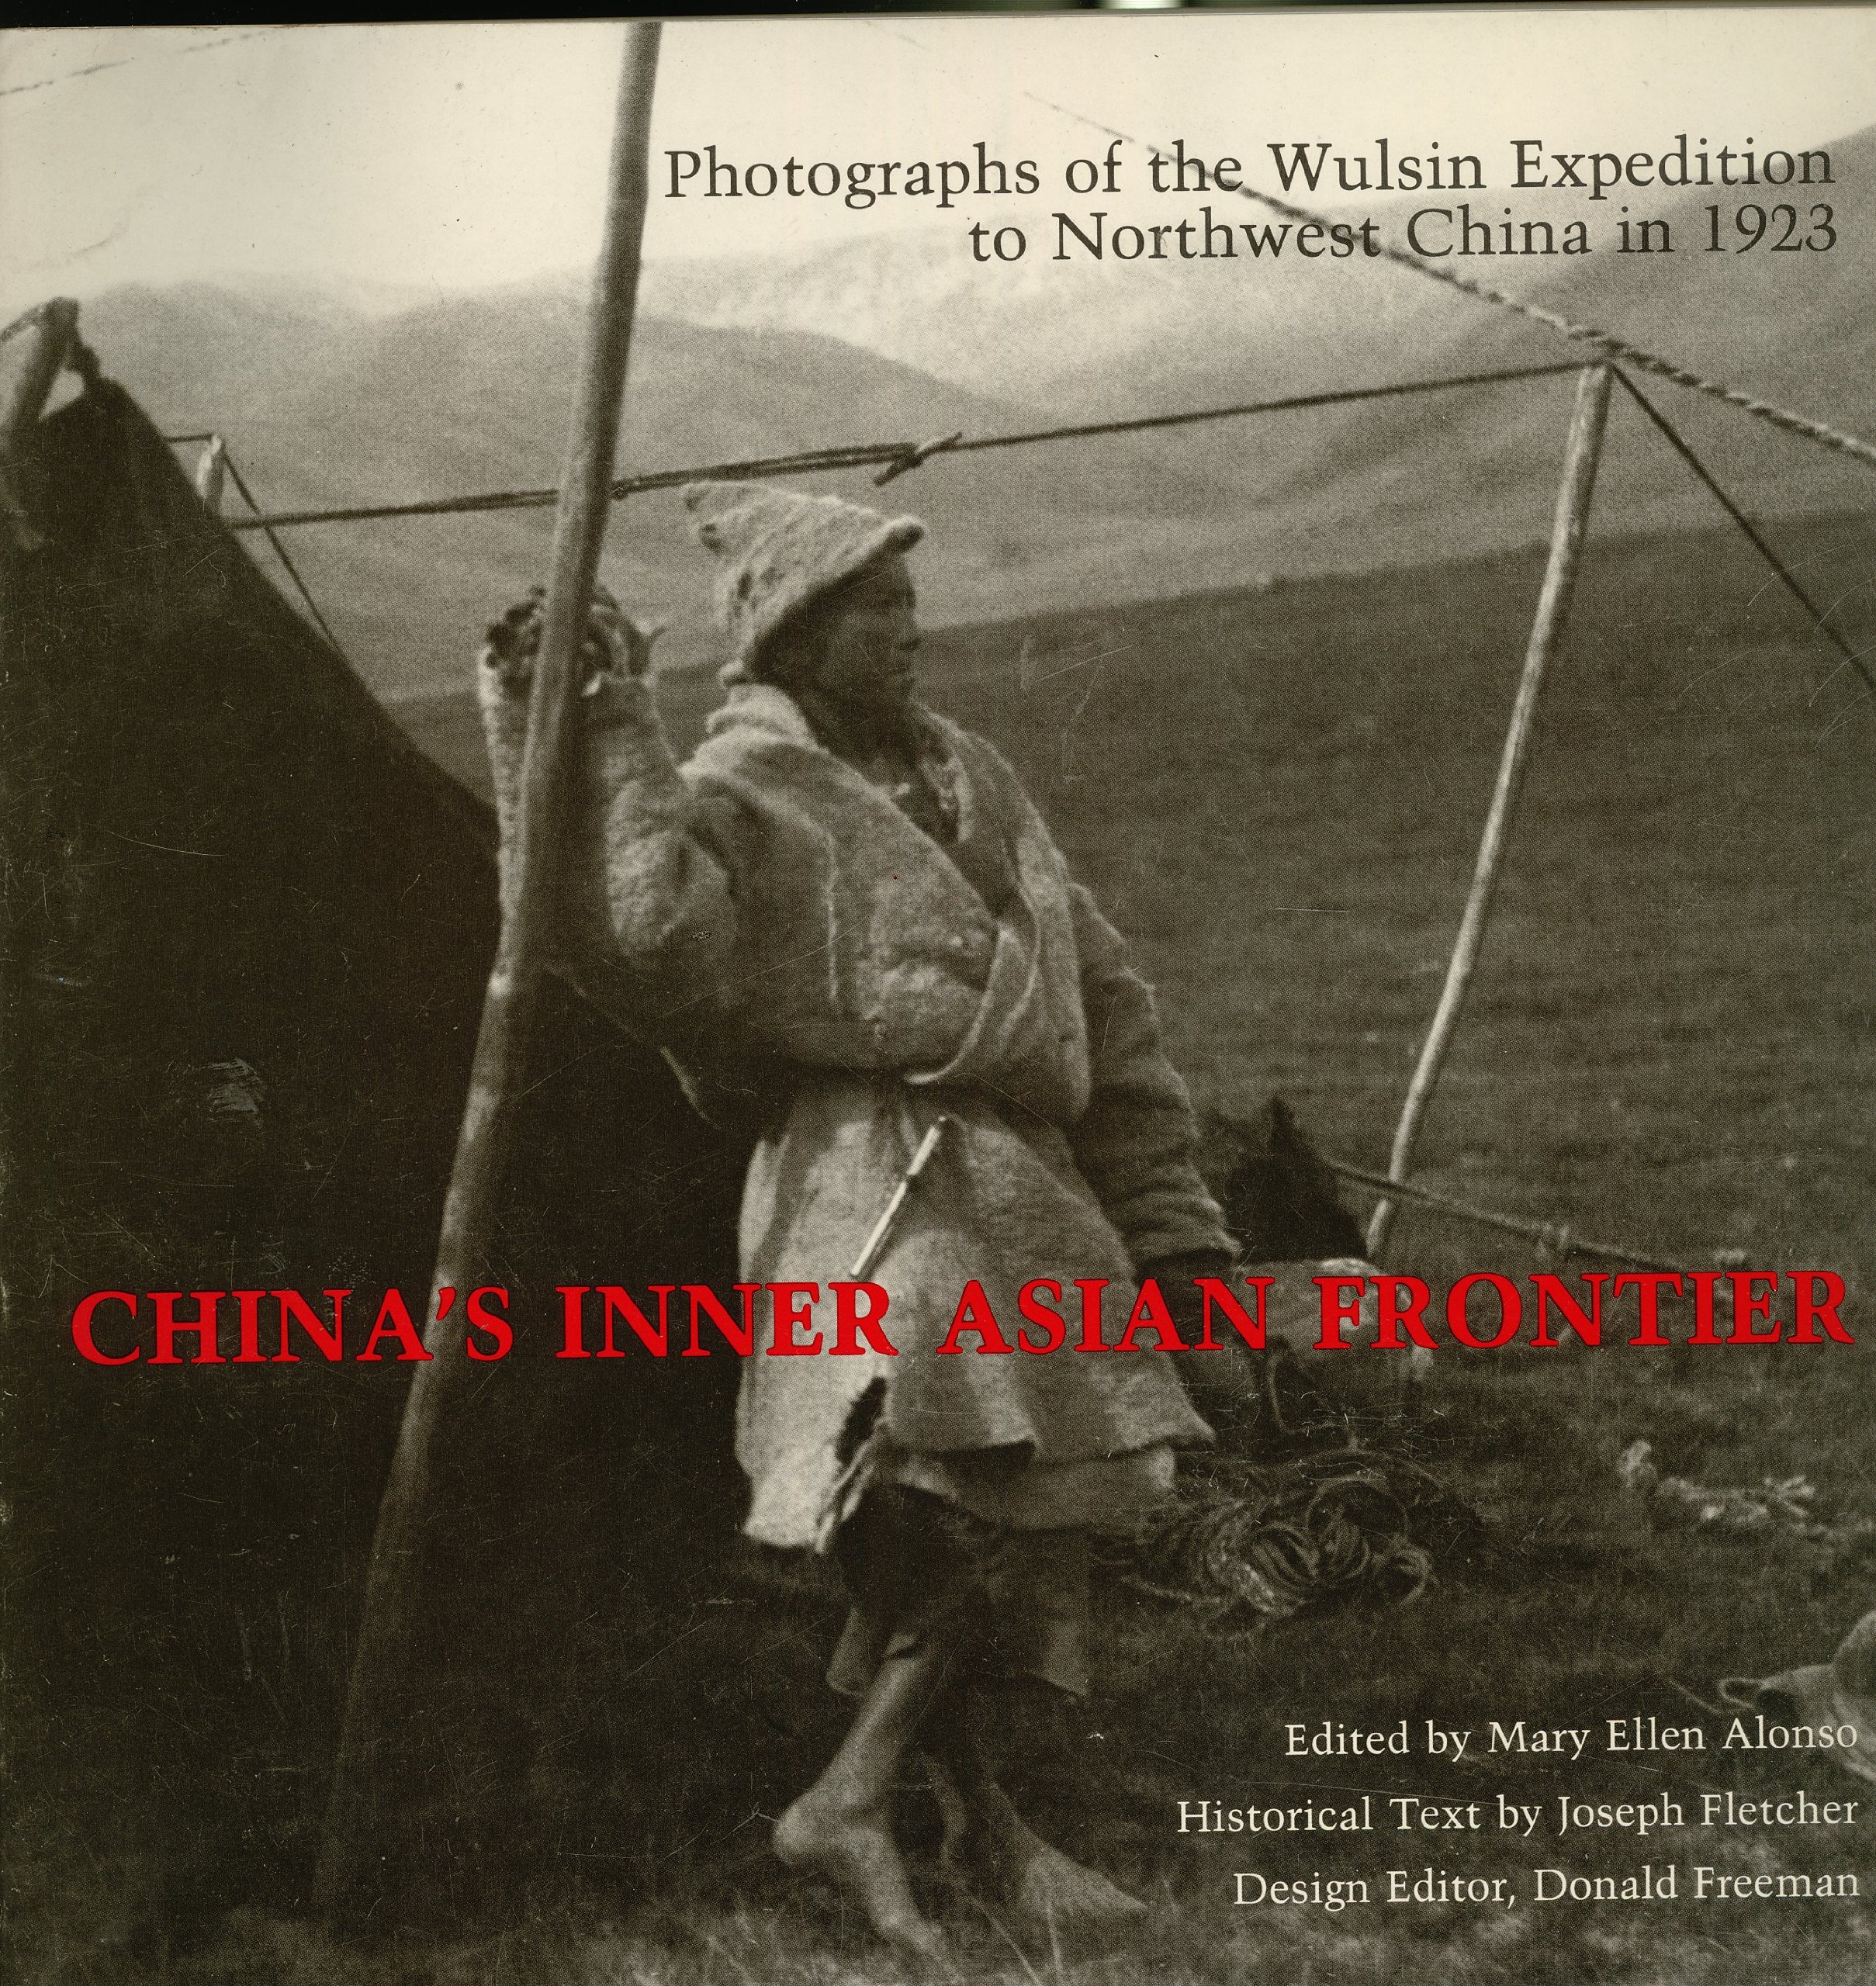 China's Inner Asian Frontier: Photographs of the Wulsin Expedition to Northwest China in 1923